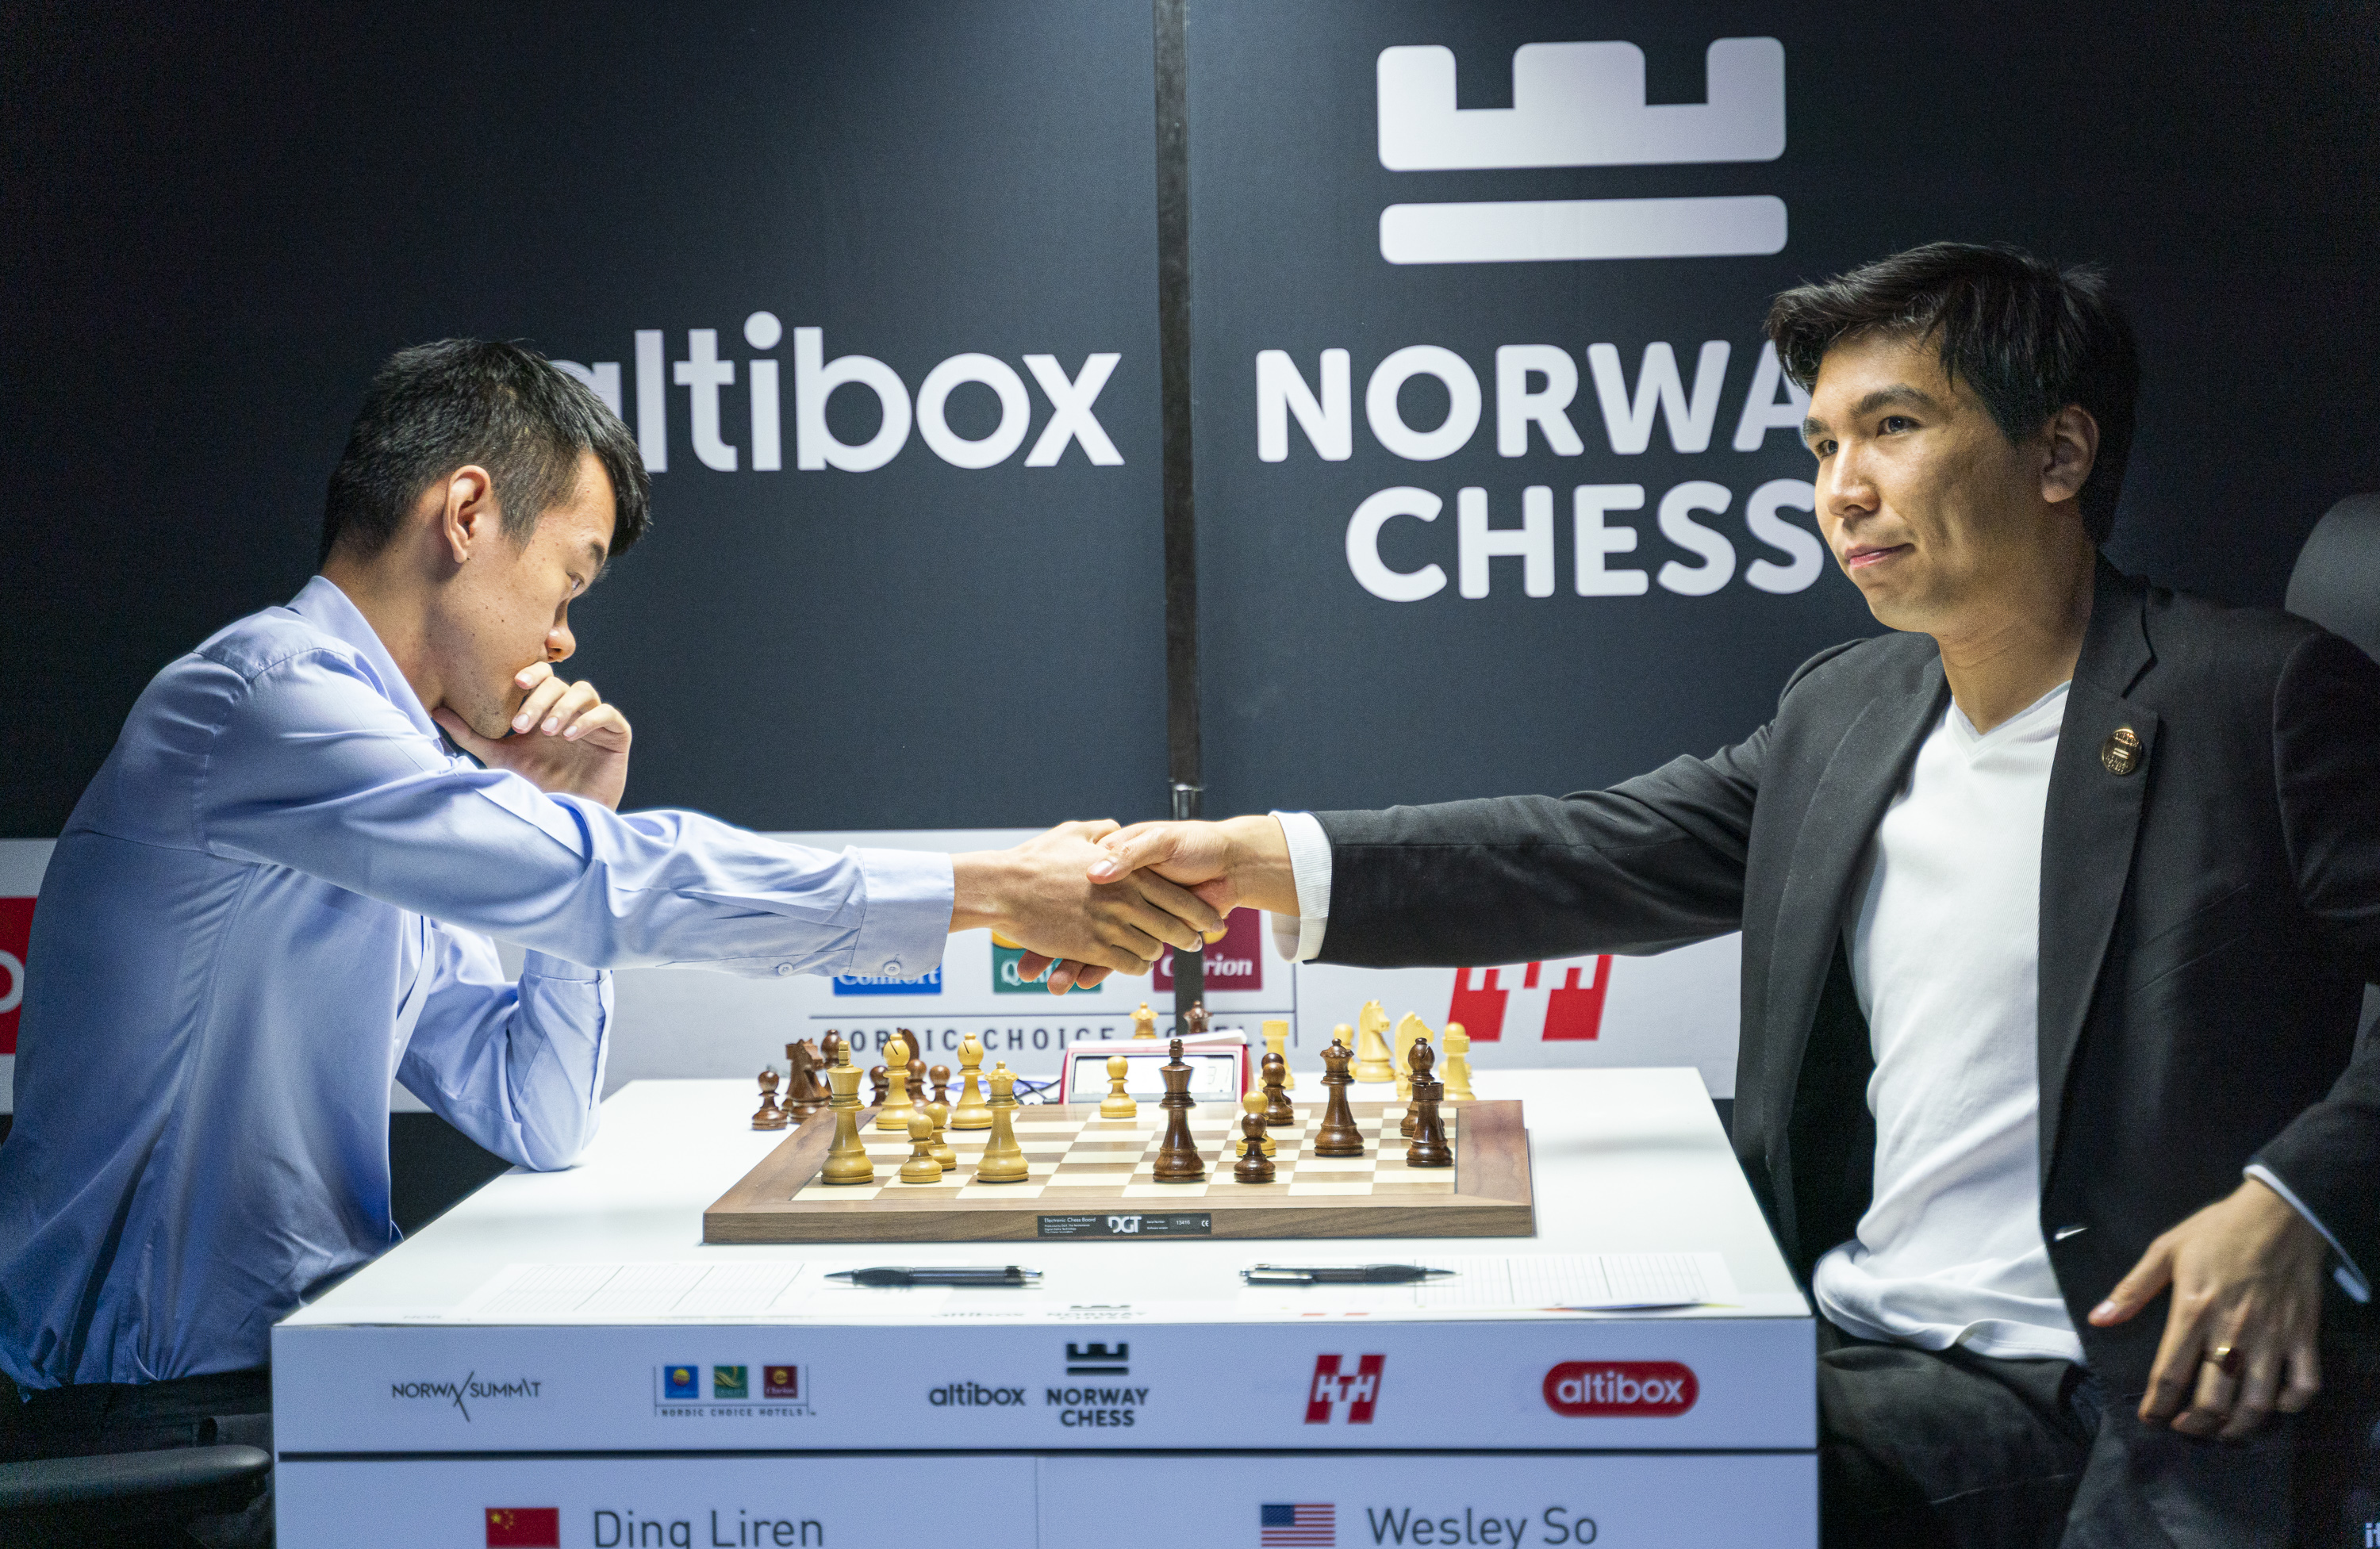 Ding Liren beats Wesley So in the first Armageddon game of the tournament.